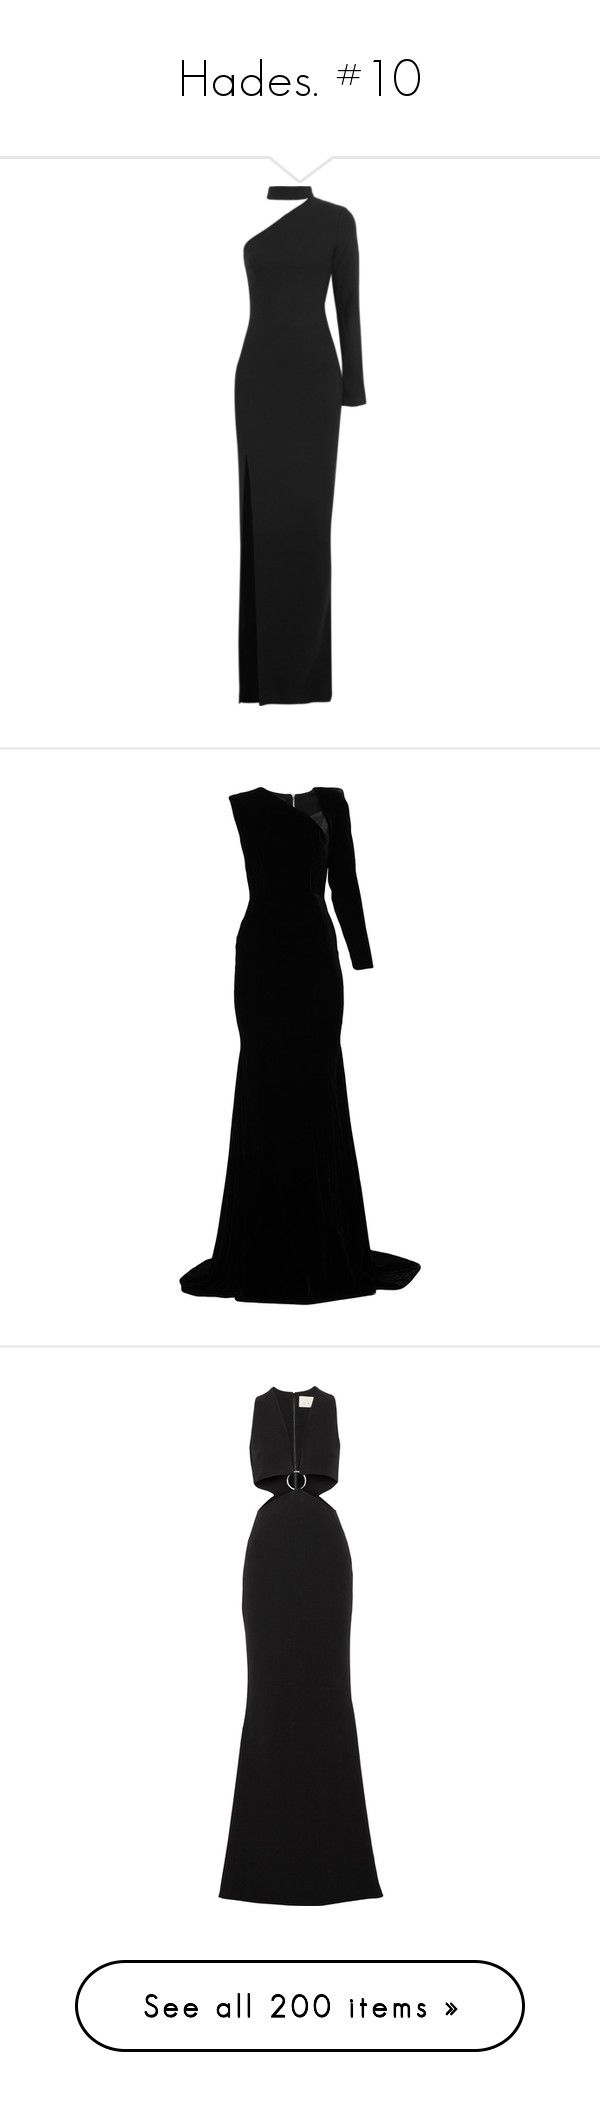 """Hades. #10"" by xiuchen-was-taken ❤ liked on Polyvore featuring dresses, gowns, gown, black, one shoulder evening dresses, single shoulder dress, one shoulder dress, one sleeve gown, one shoulder ball gowns and one shoulder gown"